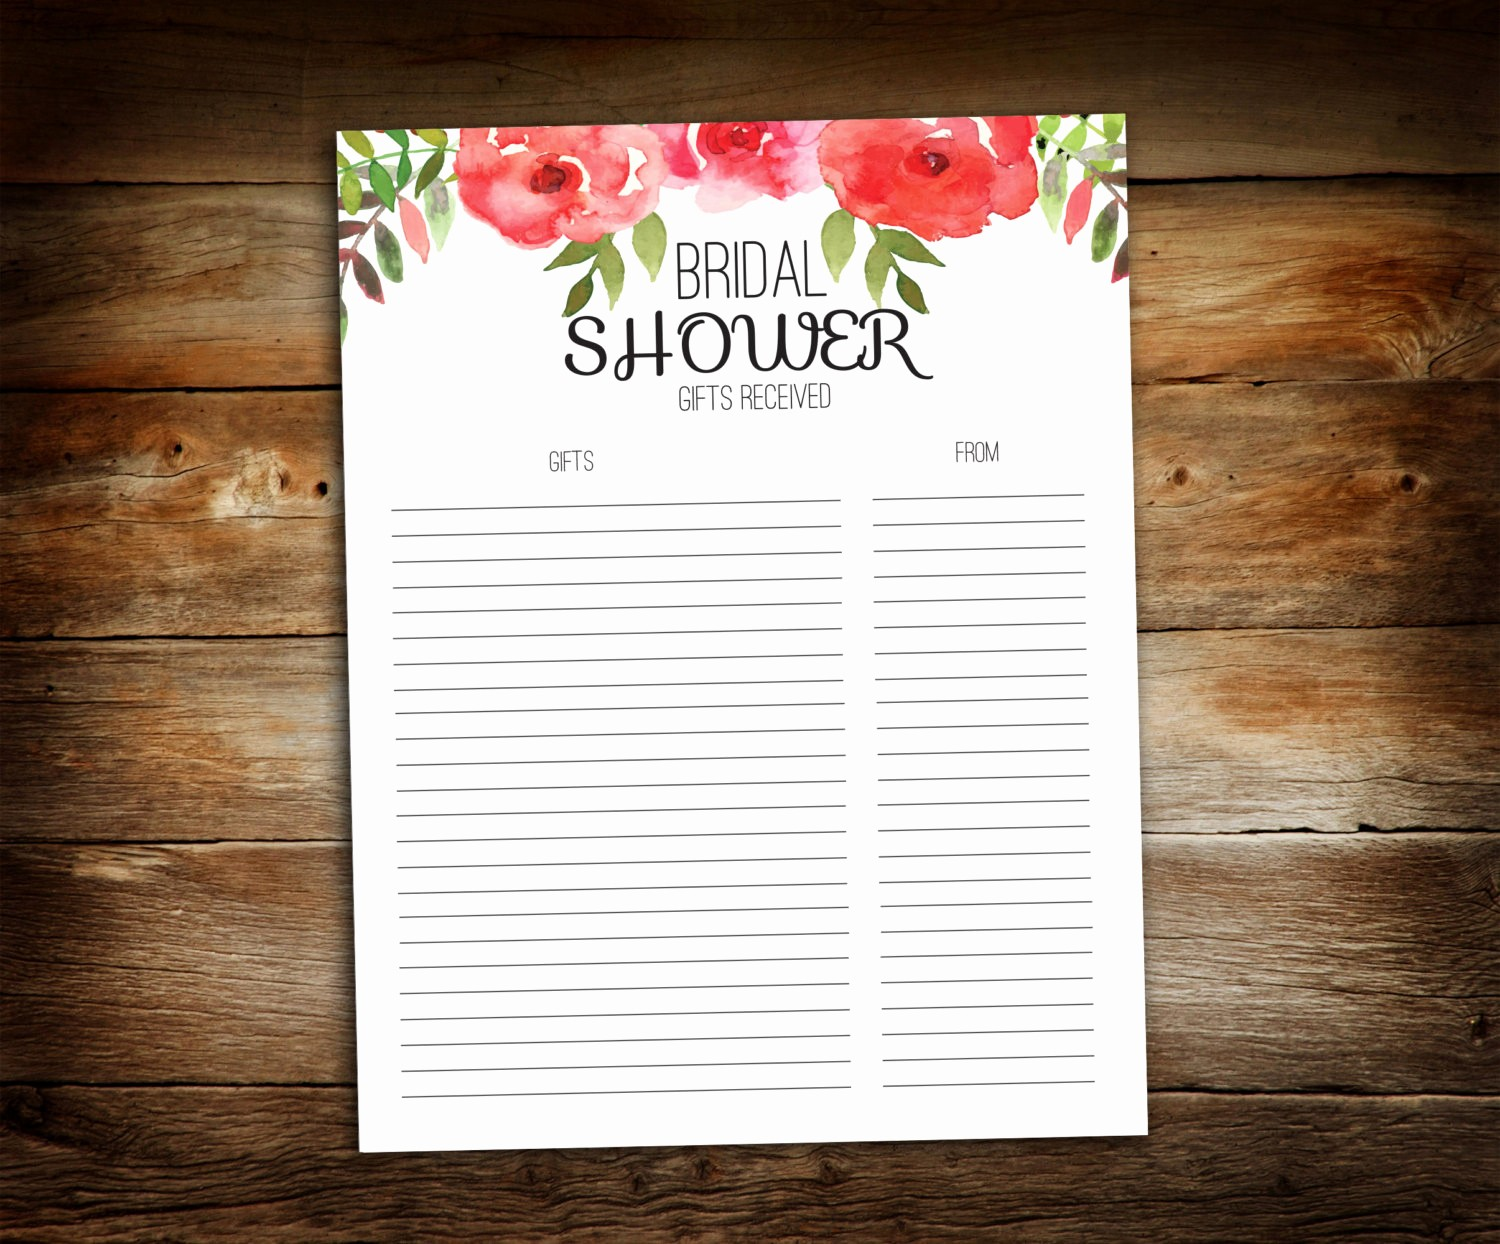 Bridal Shower Gift List Sheet Beautiful Bridal Shower Gift List List Of Received Gifts Wedding